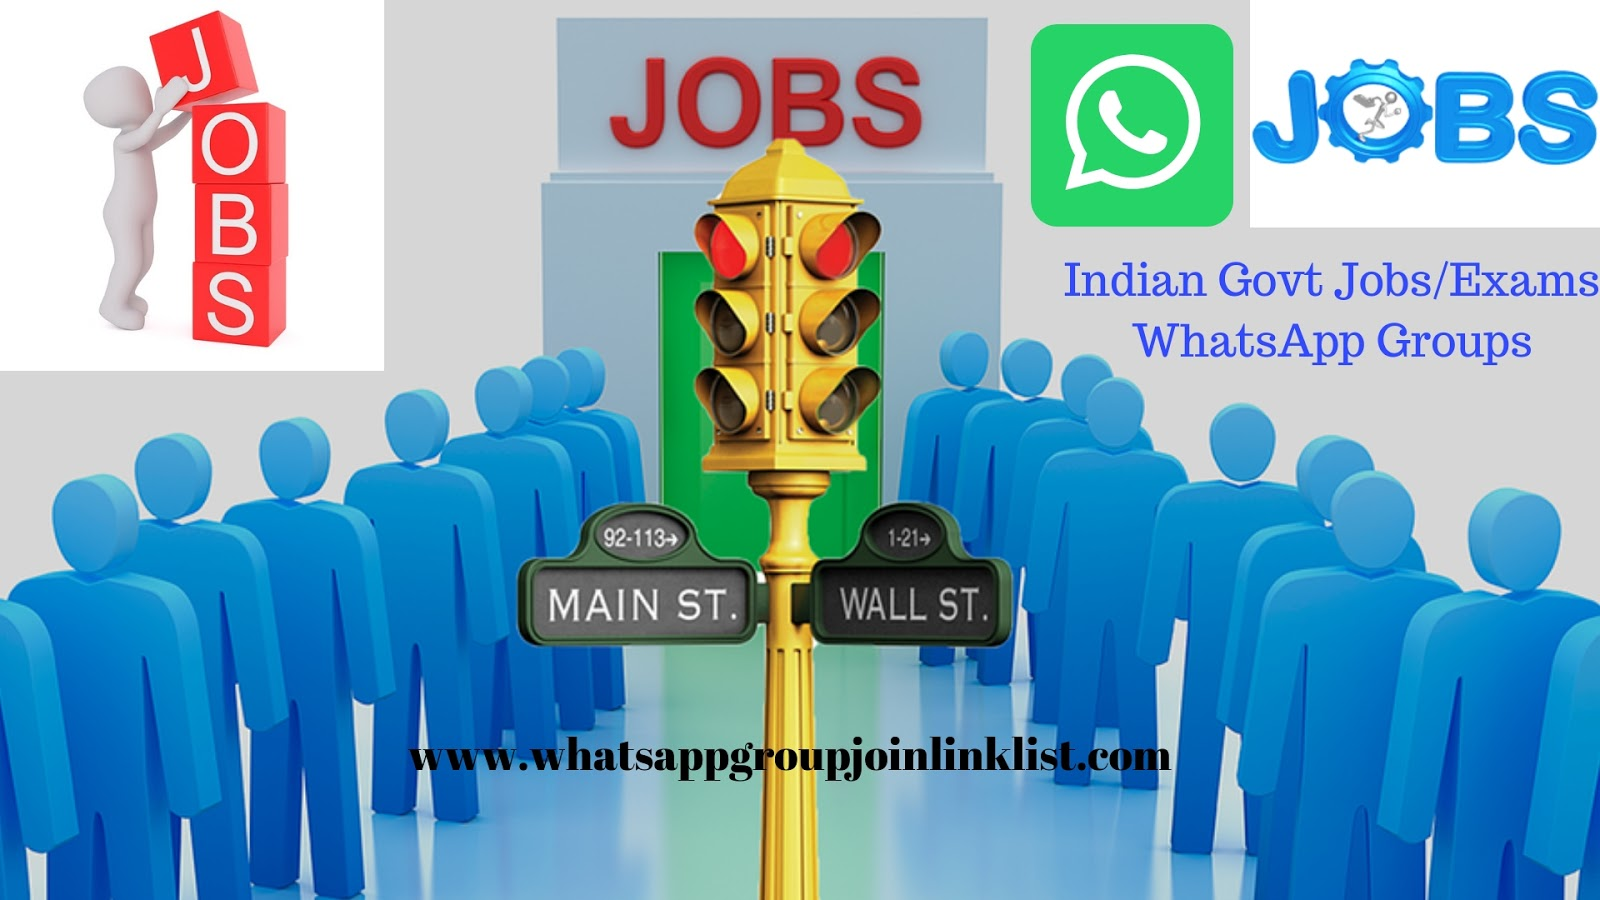 Indian Govt Jobs/Exams & Govt Related WhatsApp Group Join